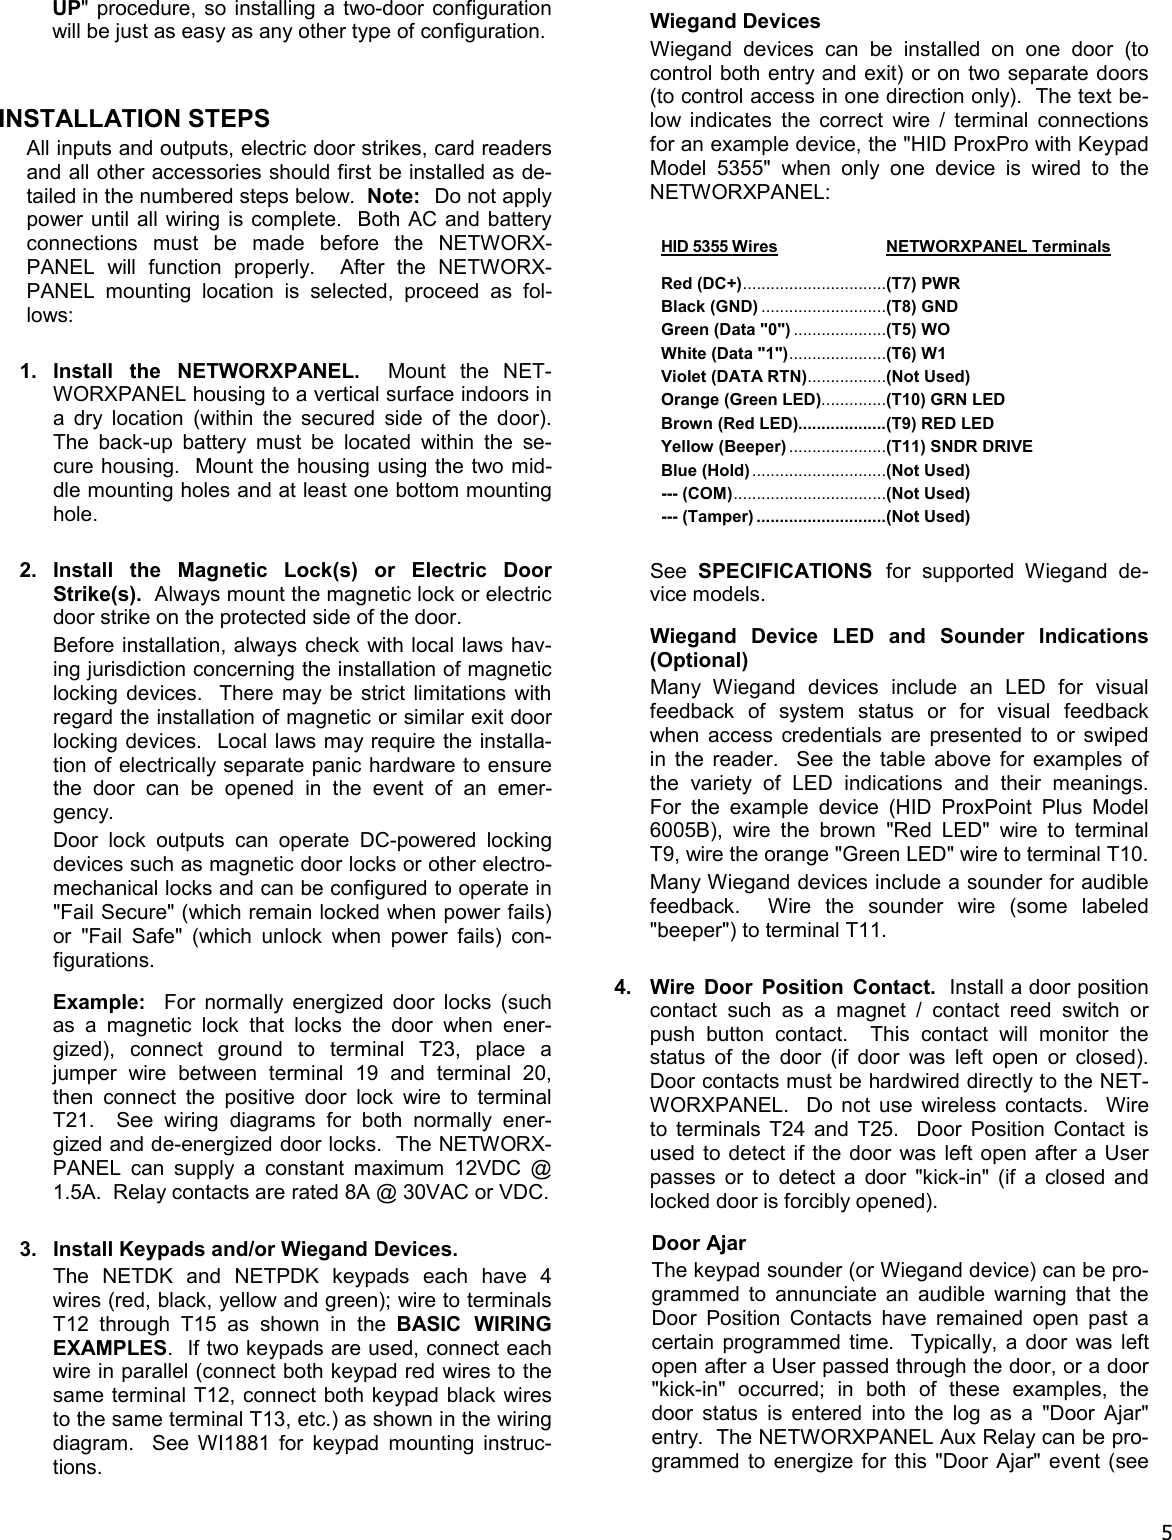 Alarm Lock Networxpanel Wi1856b02 Inst Wireless Hid Reader Wiring Diagram Page 5 Of 12 Networx Control Panel